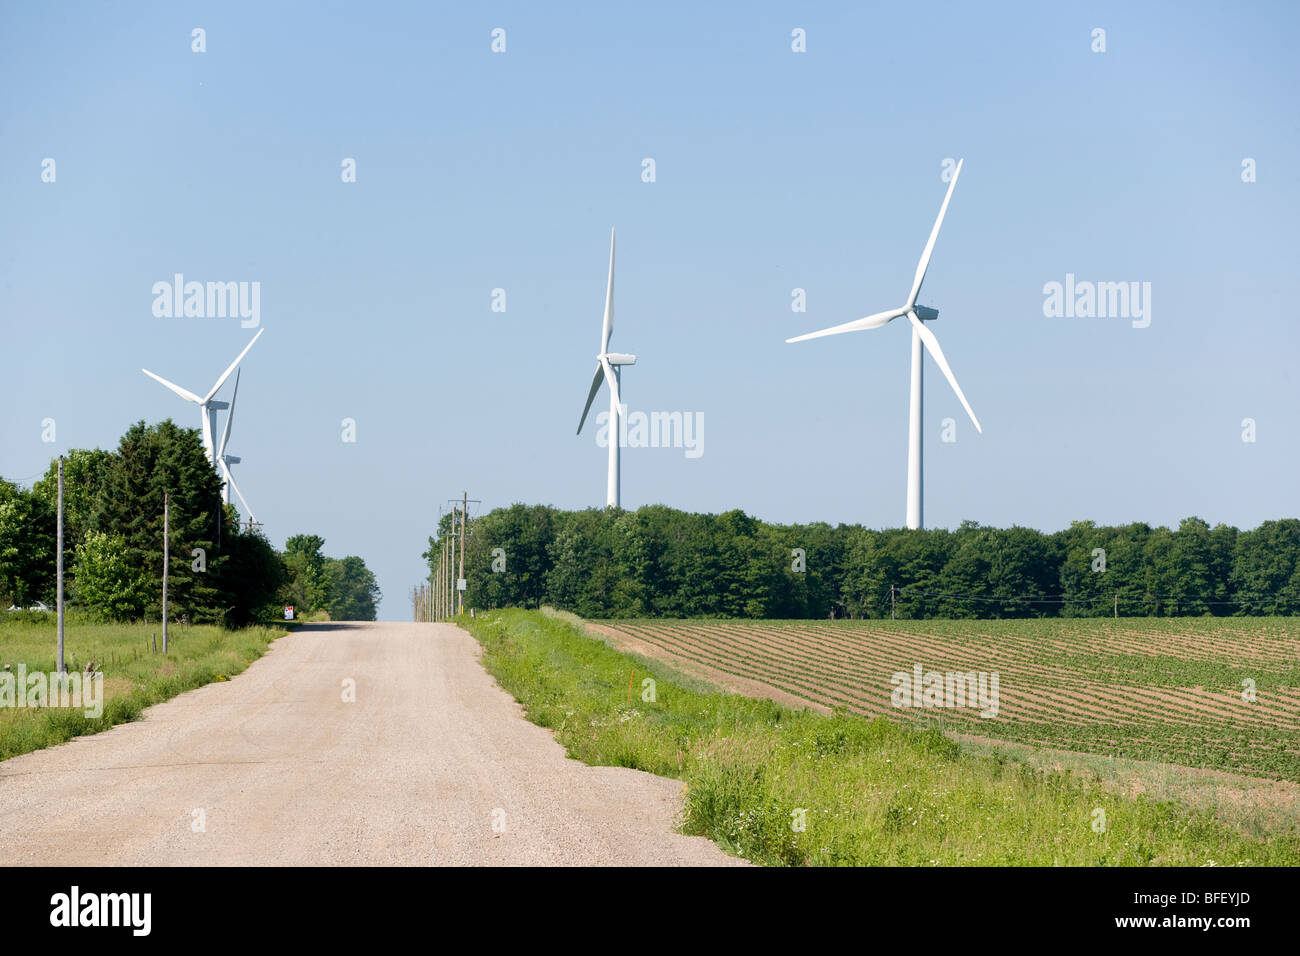 wind turbines, Shellburne, Ontario, Canada, wind energy, alternate energy - Stock Image